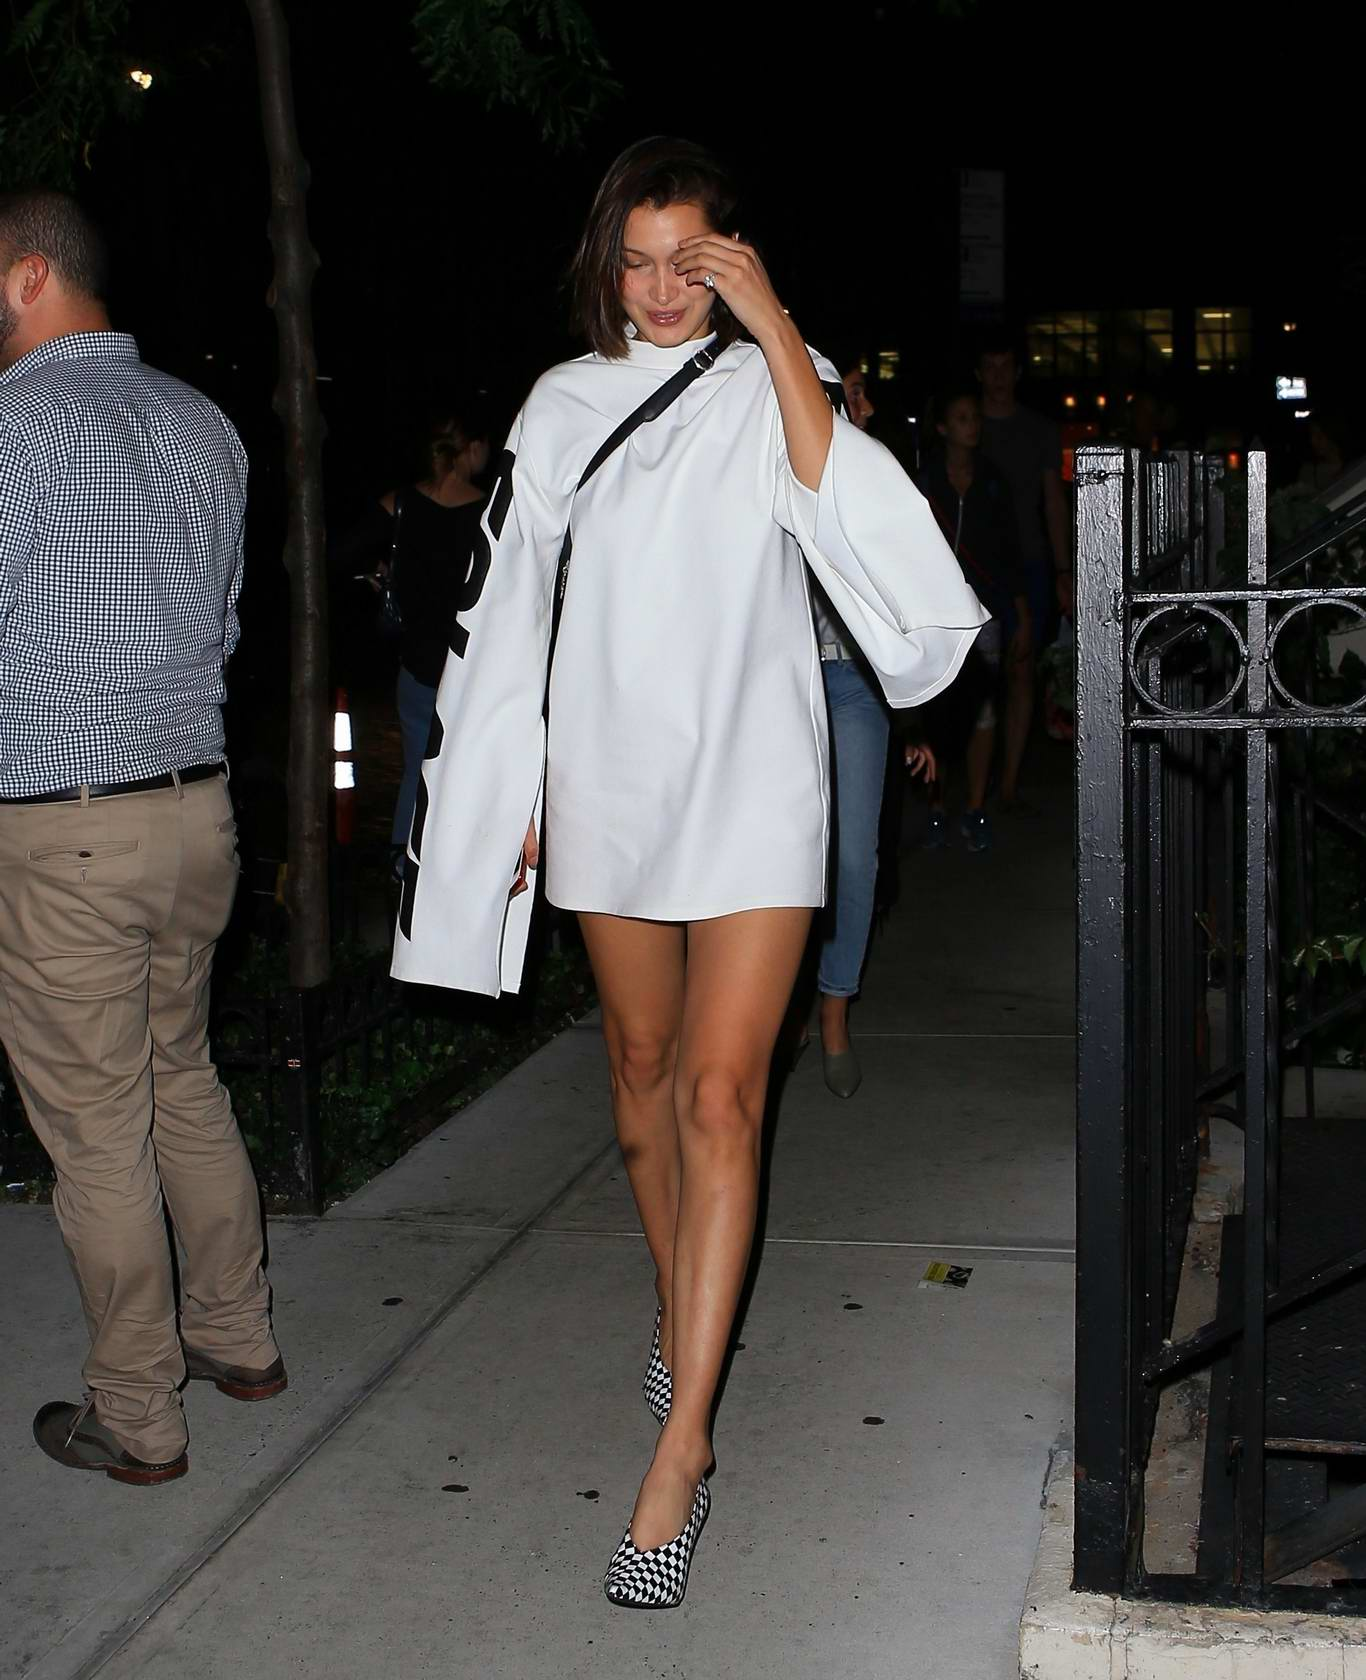 Bella Hadid leaving for a night out in New York